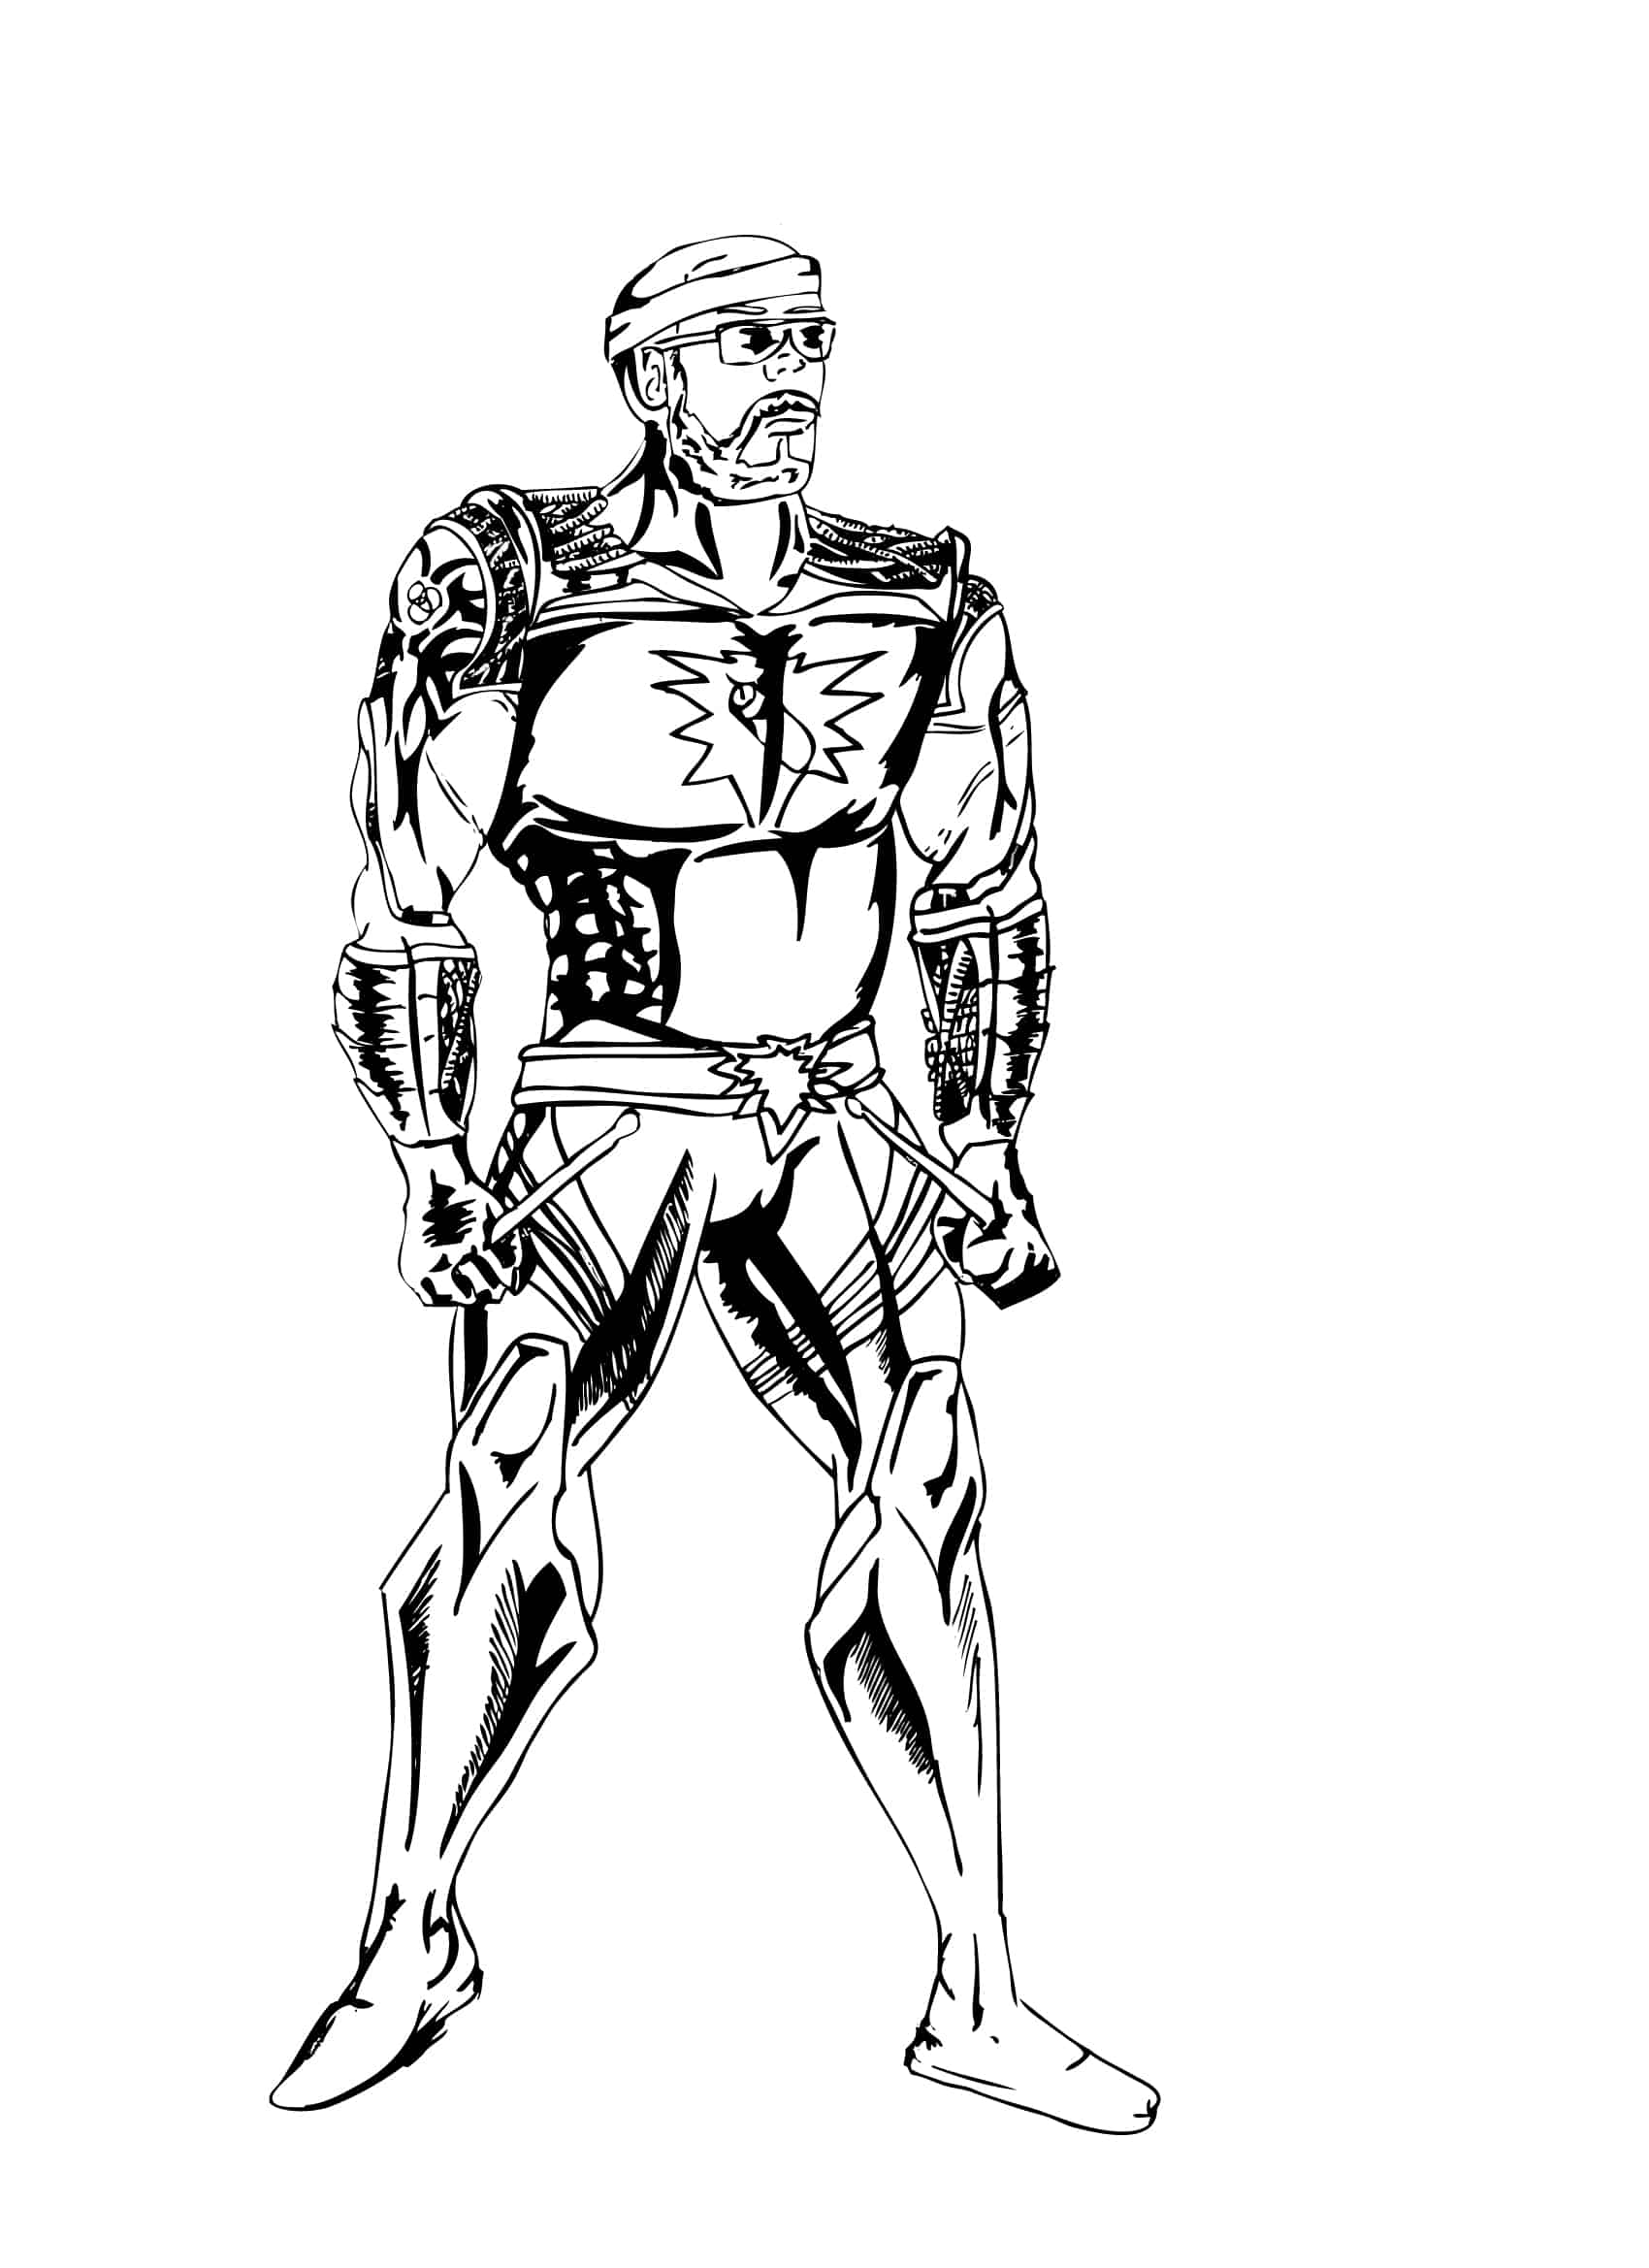 chris inked superhero 1ai